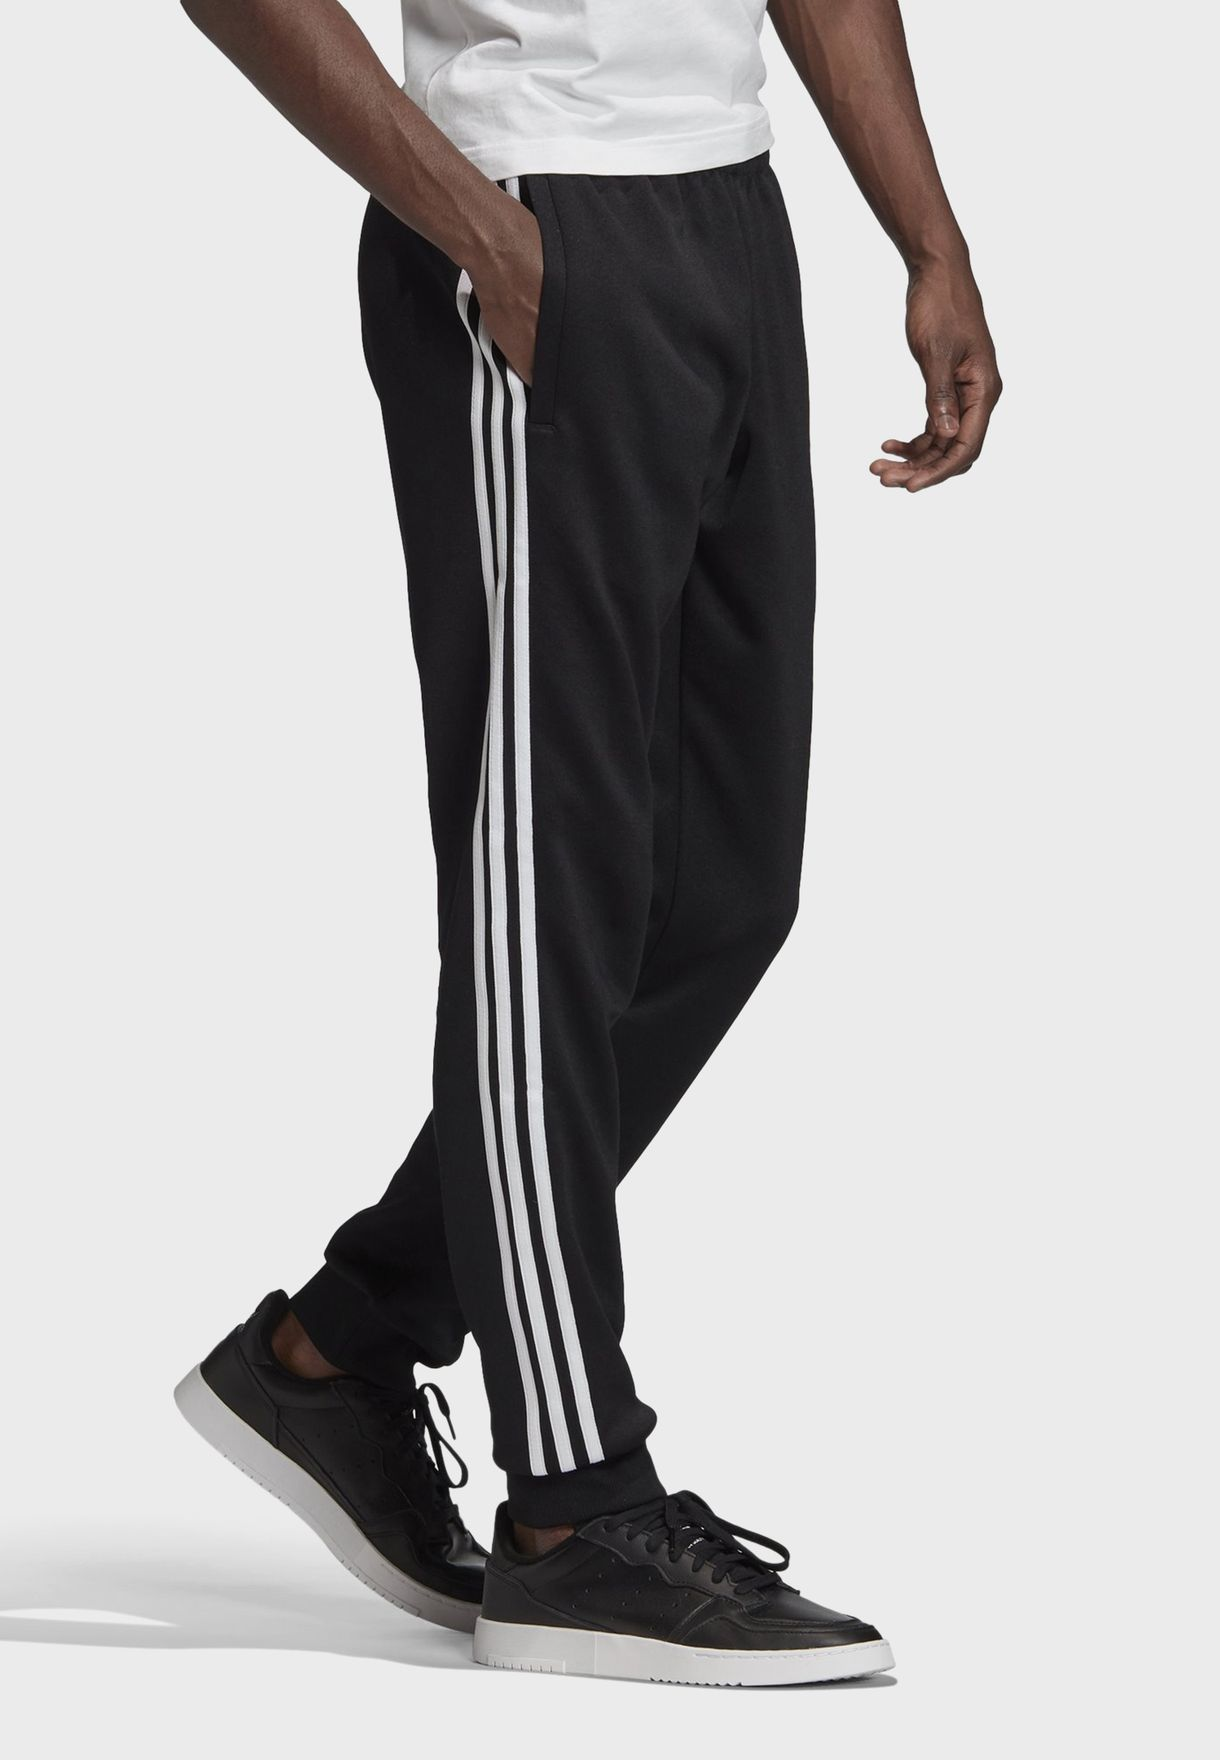 SST Adicolor Casual Men's Tracksuit